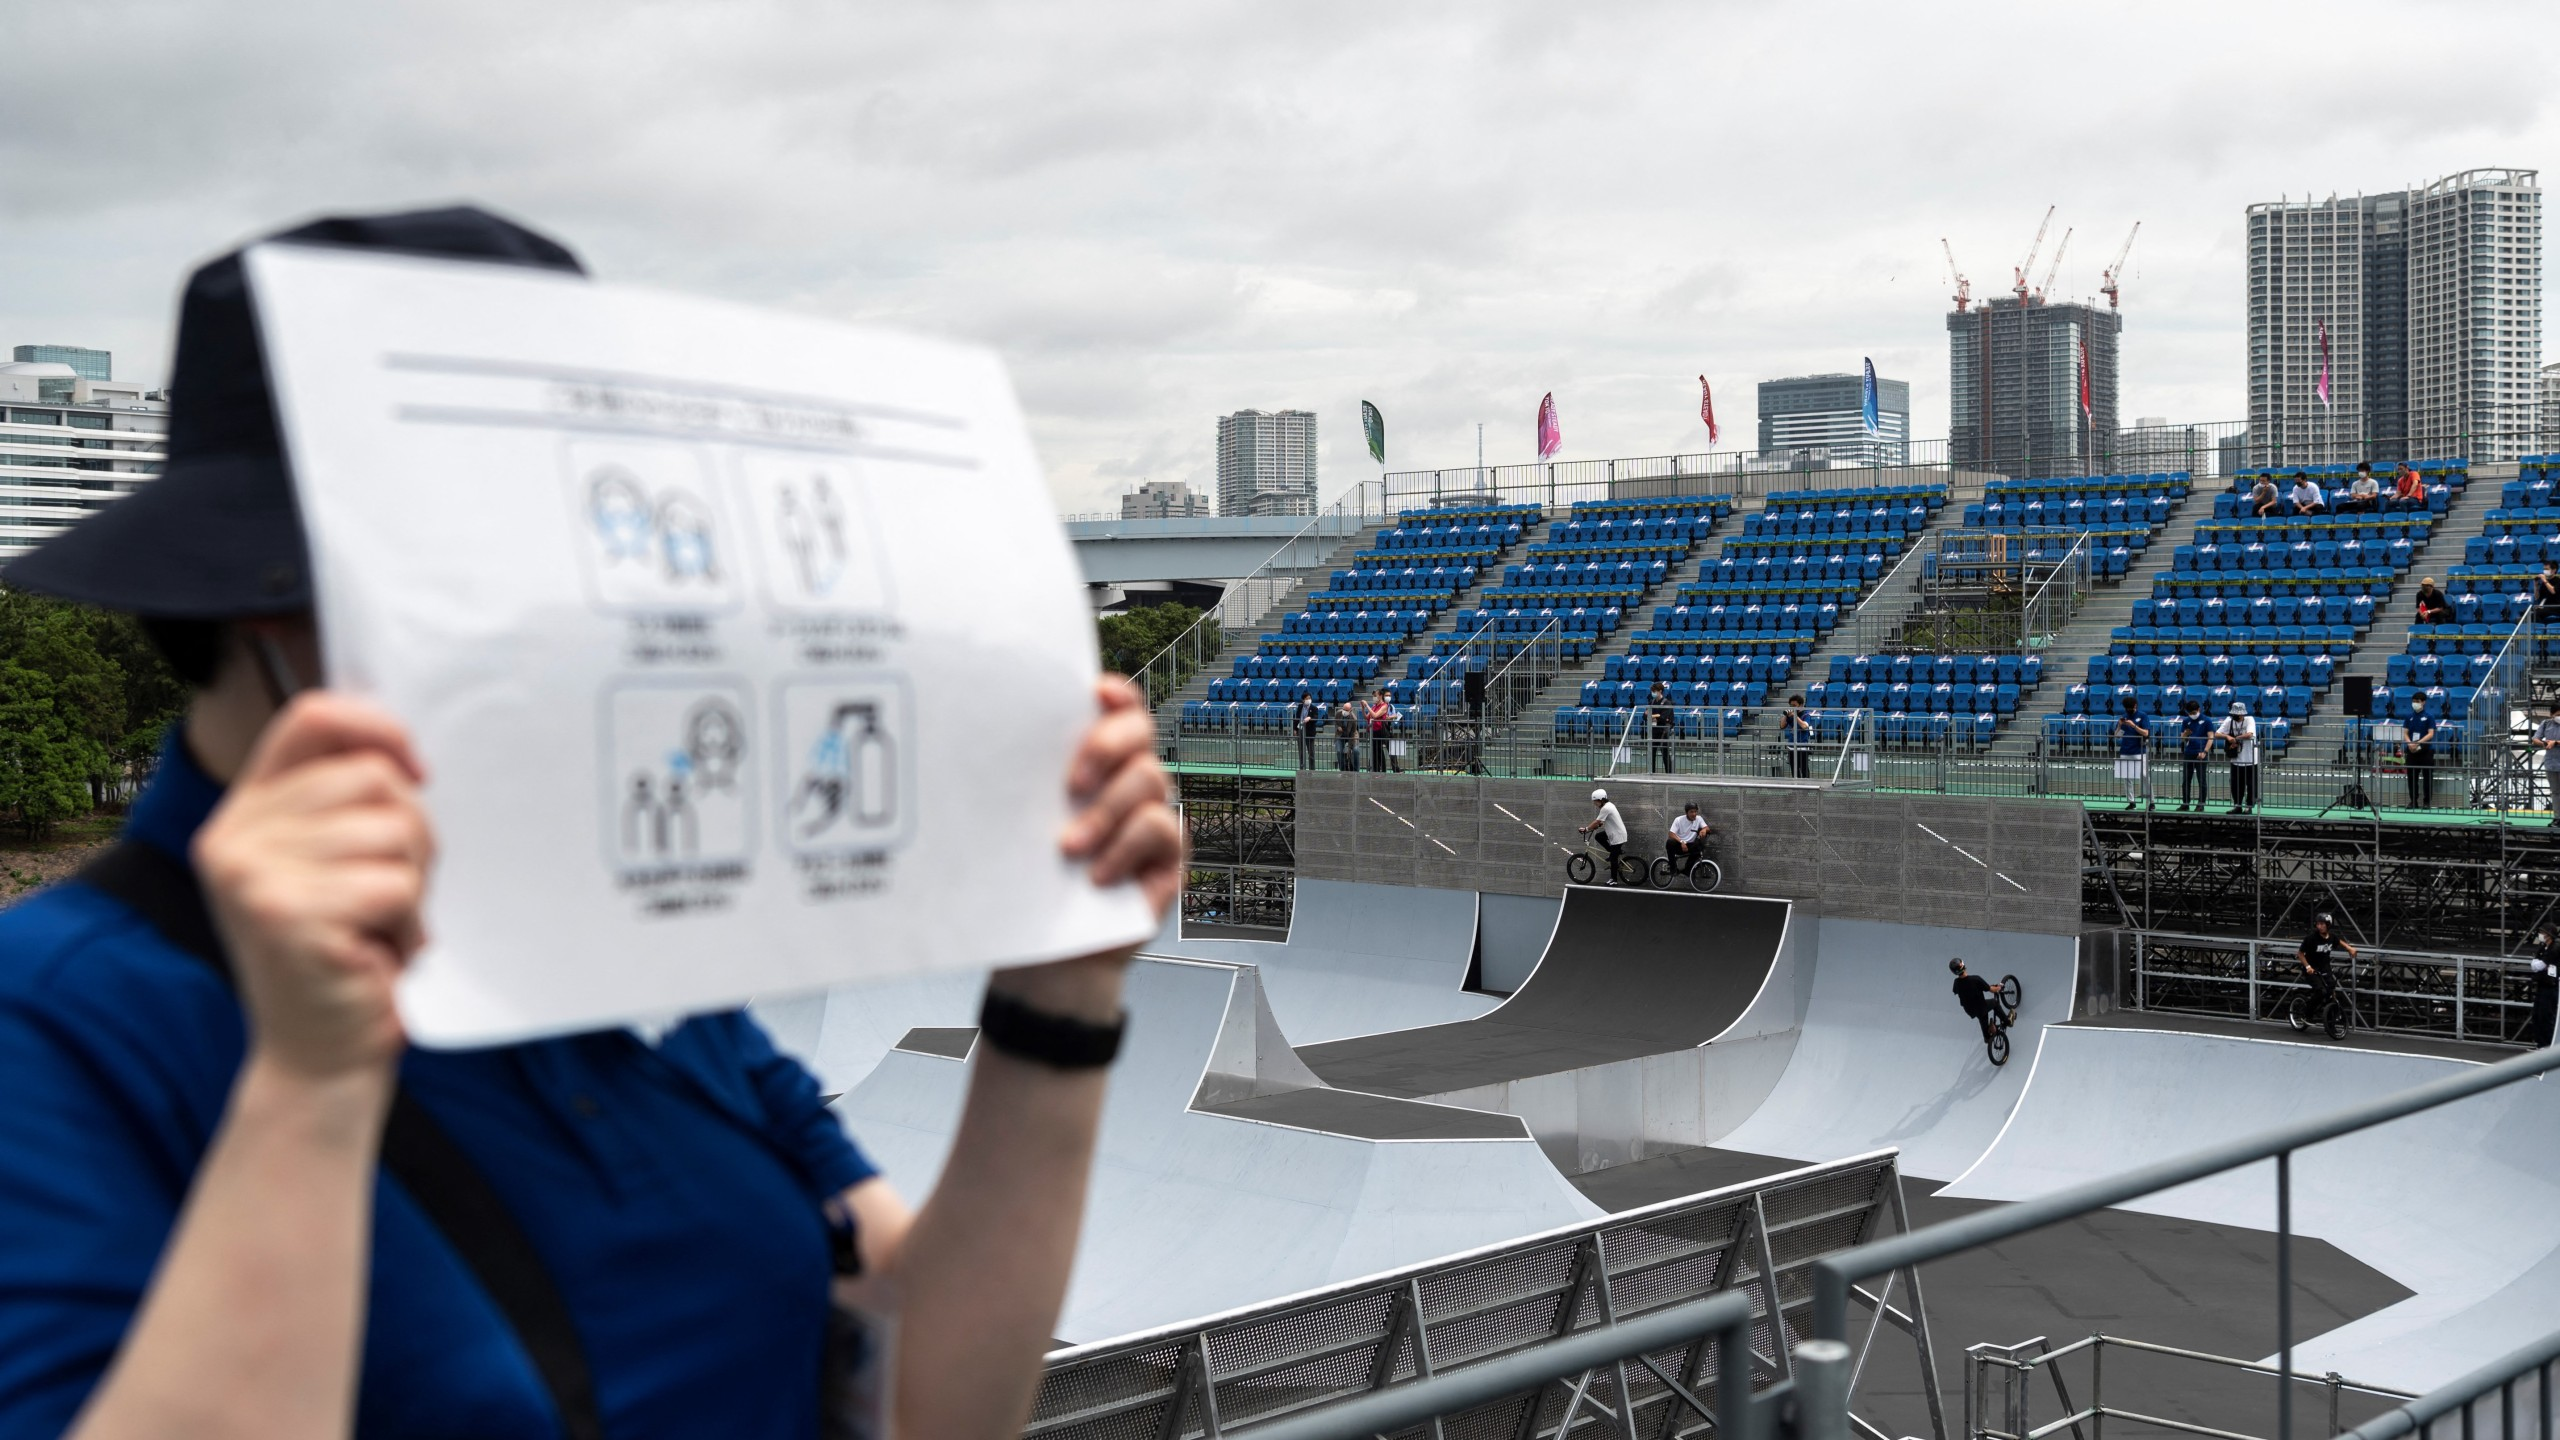 A volunteer holds a poster with measures against covid19 propagation in the BMX freestyle track venue during a test event for the Tokyo 2020 Olympic Games at Ariake Urban Sports Park in Tokyo on May 17, 2021. (CHARLY TRIBALLEAU / AFP)